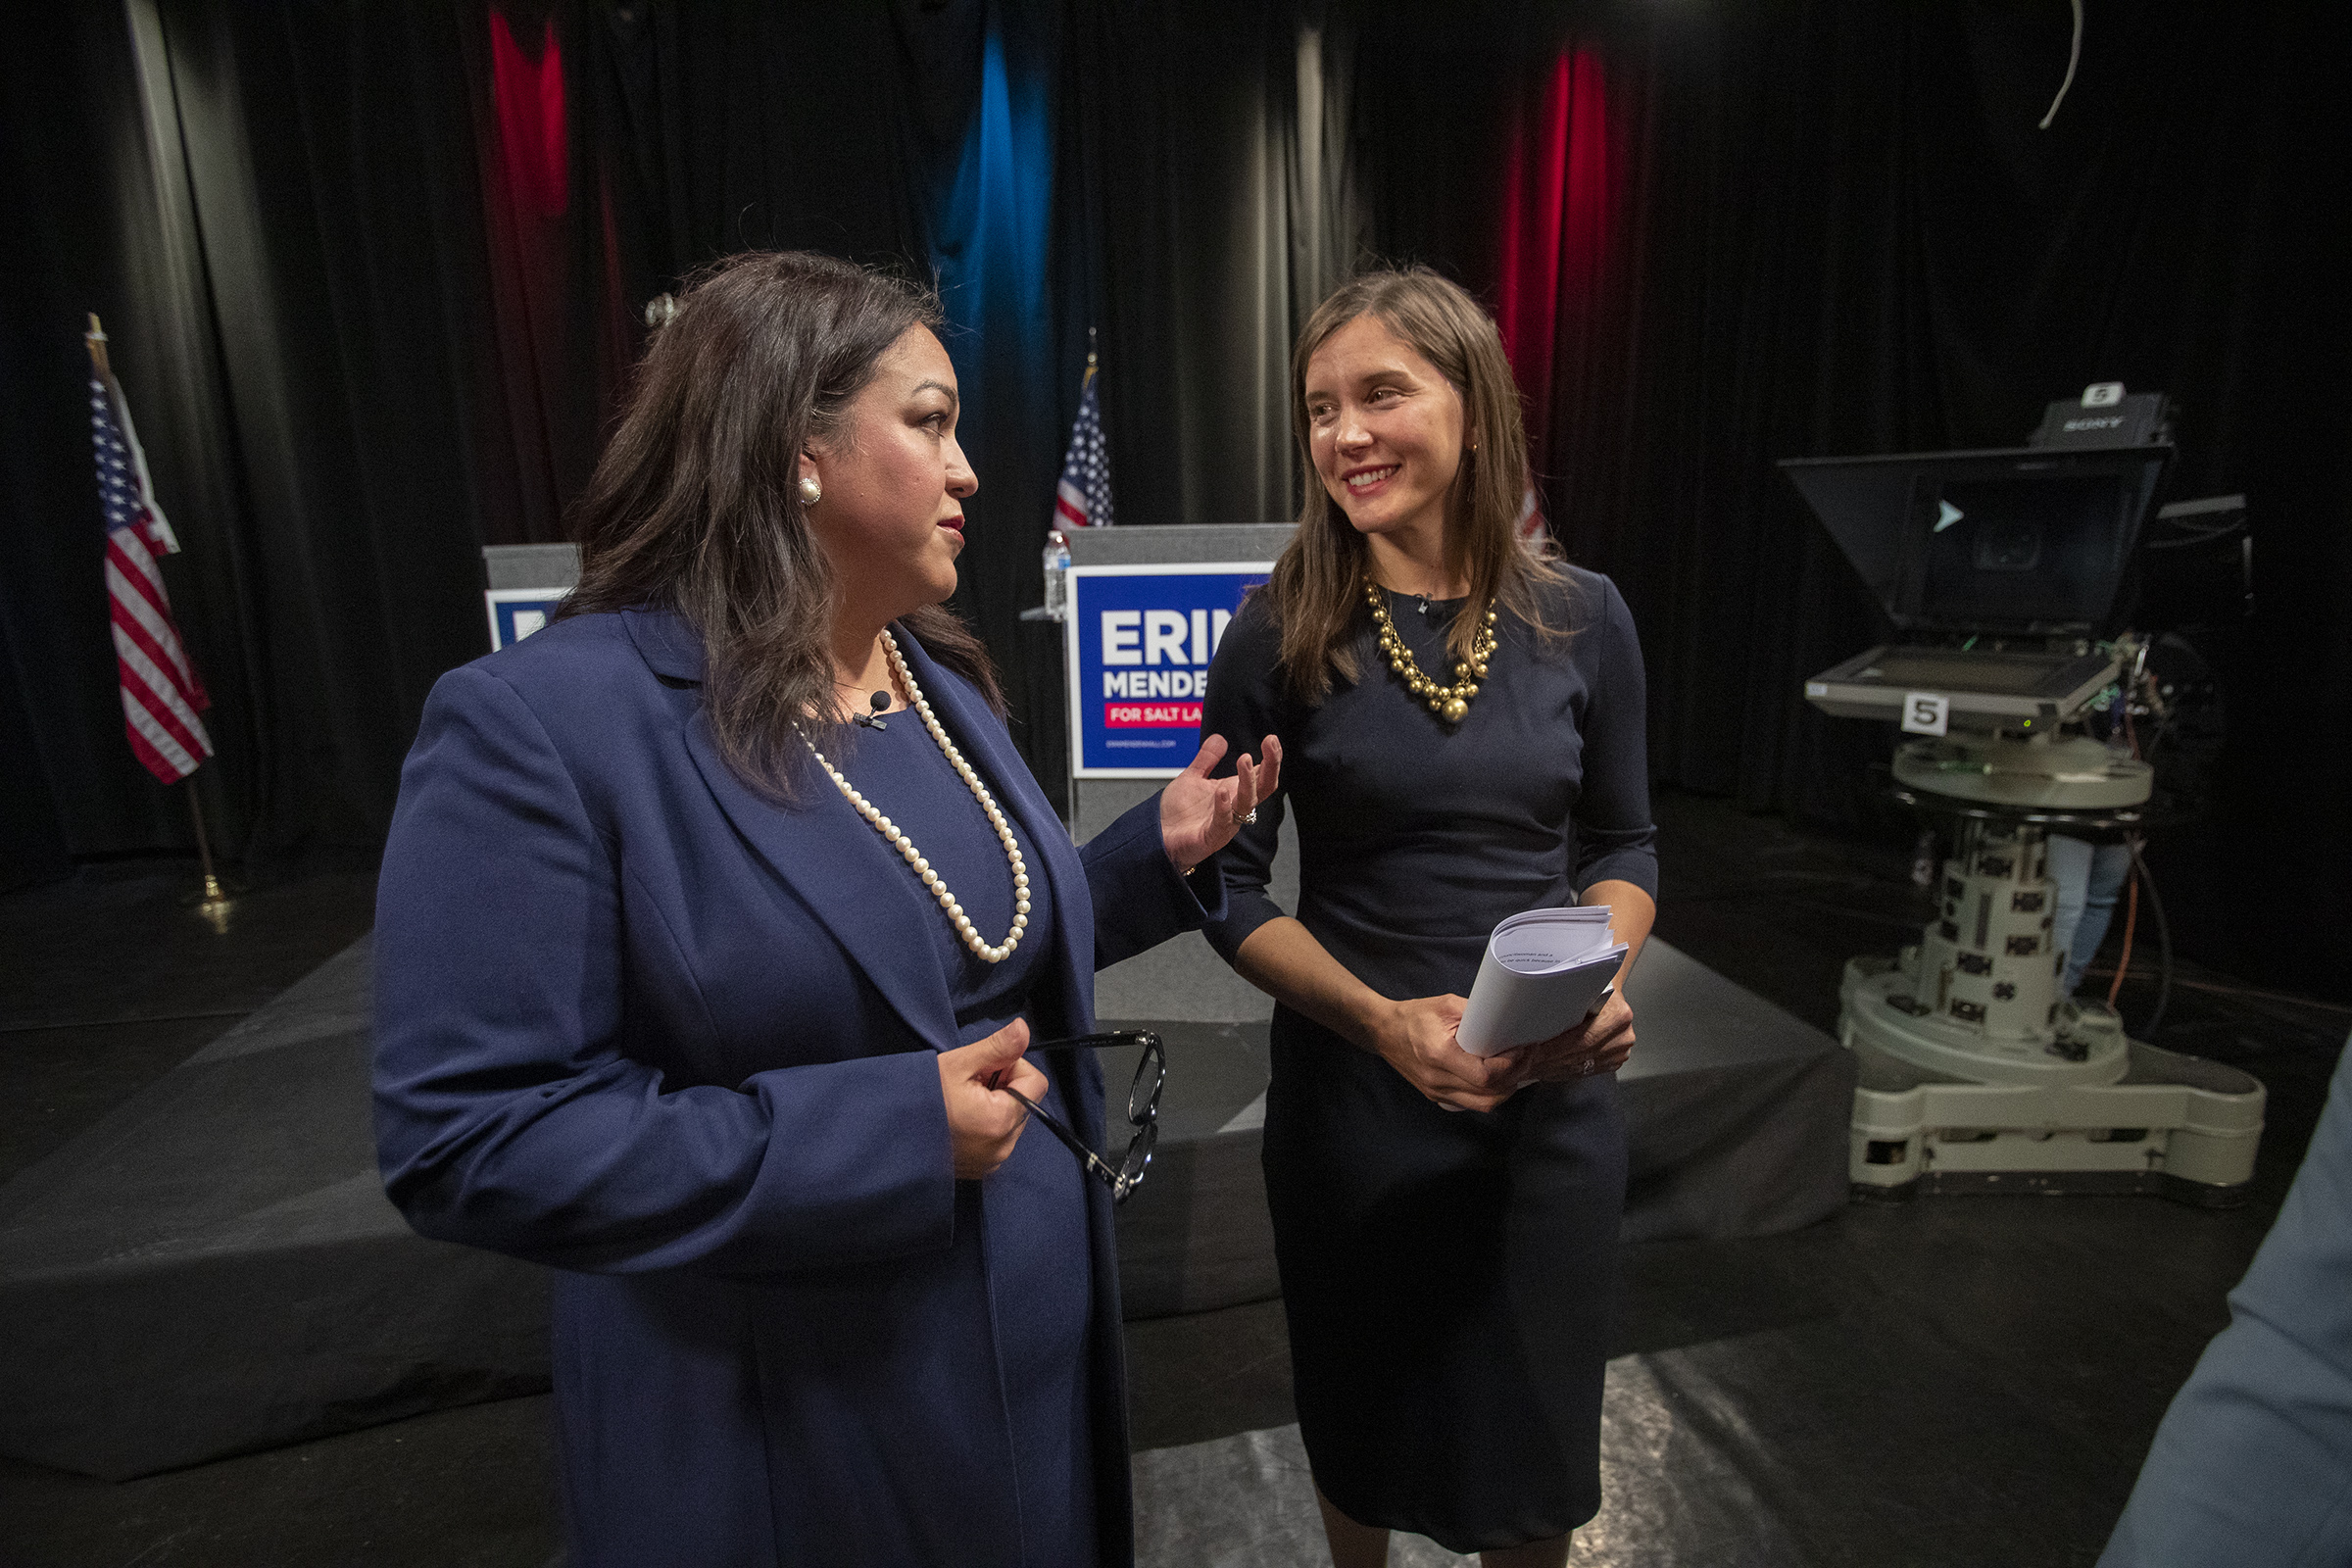 Salt Lake City mayoral candidates Luz Escamilla and Erin Mendenhall chat as they walk off the stage following a televised debate at the Triad Center in Salt Lake City on Monday, Oct. 21, 2019.